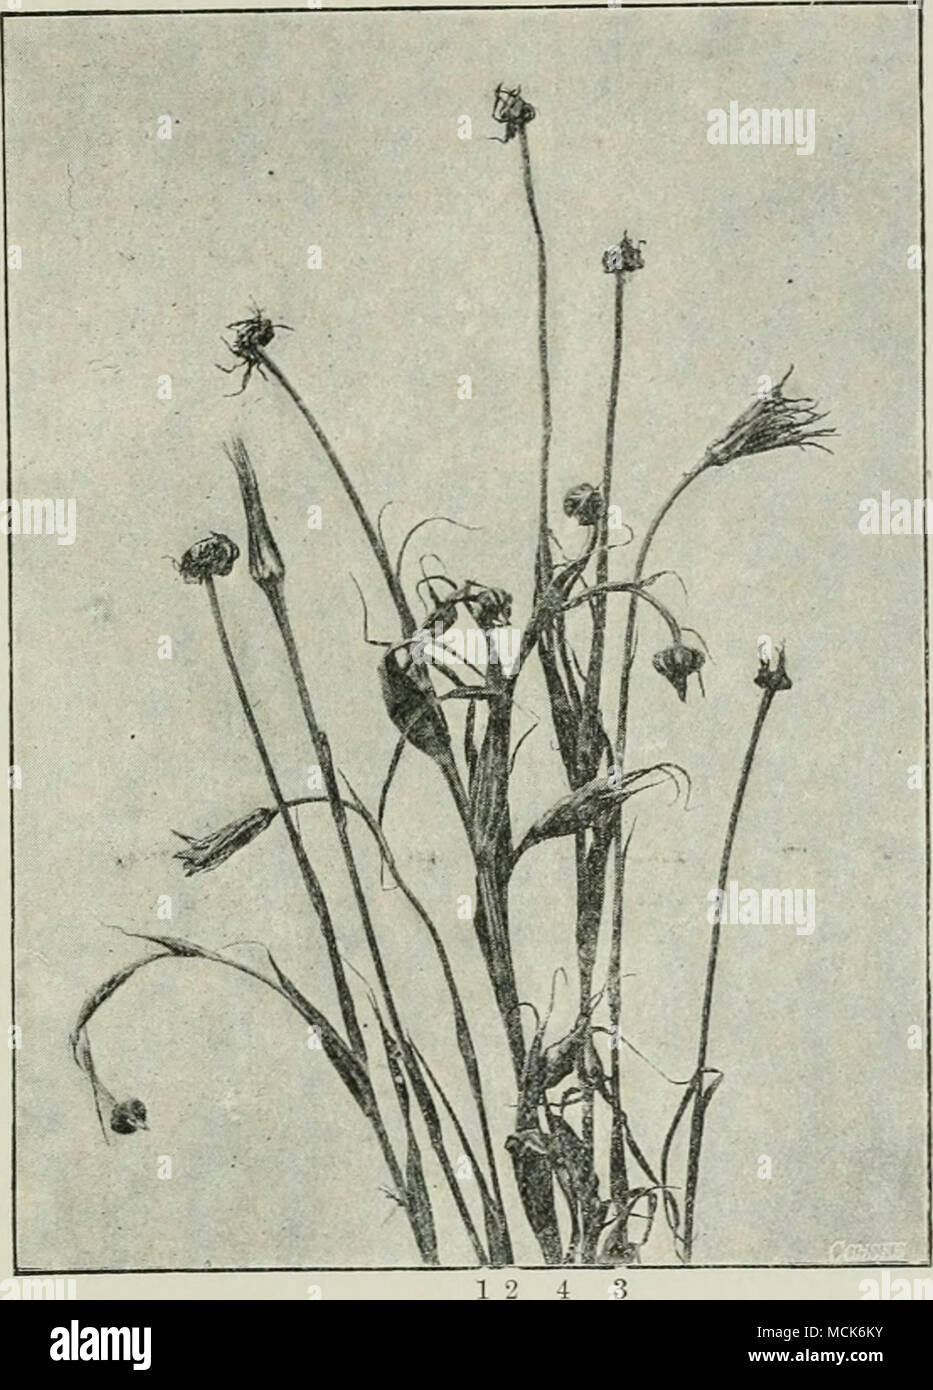 . Fig. 181.—Ustilarjo tragopogonis. Plants of Tragopogon in flower and fruit— 1, normal fruit; 2 and 3, normal flowers; 4, two normal flower-buds. The remaining specimens are attacked by the fungus, and, in consequence, remain in the bud cundition, and filled with black spores which escape by the opening of the involucre, (v. Tubeuf phot.) yeast-like, till, on deficiency of nutrition, fusion and subsequent germination takes place. Ust. intermedia Schroet. {Ust. Jlosculorum D. C.) (Britain). The anthers of Scabiosa Cohnnharia become filled with the dark violet spores of this smut. The spores ge - Stock Image